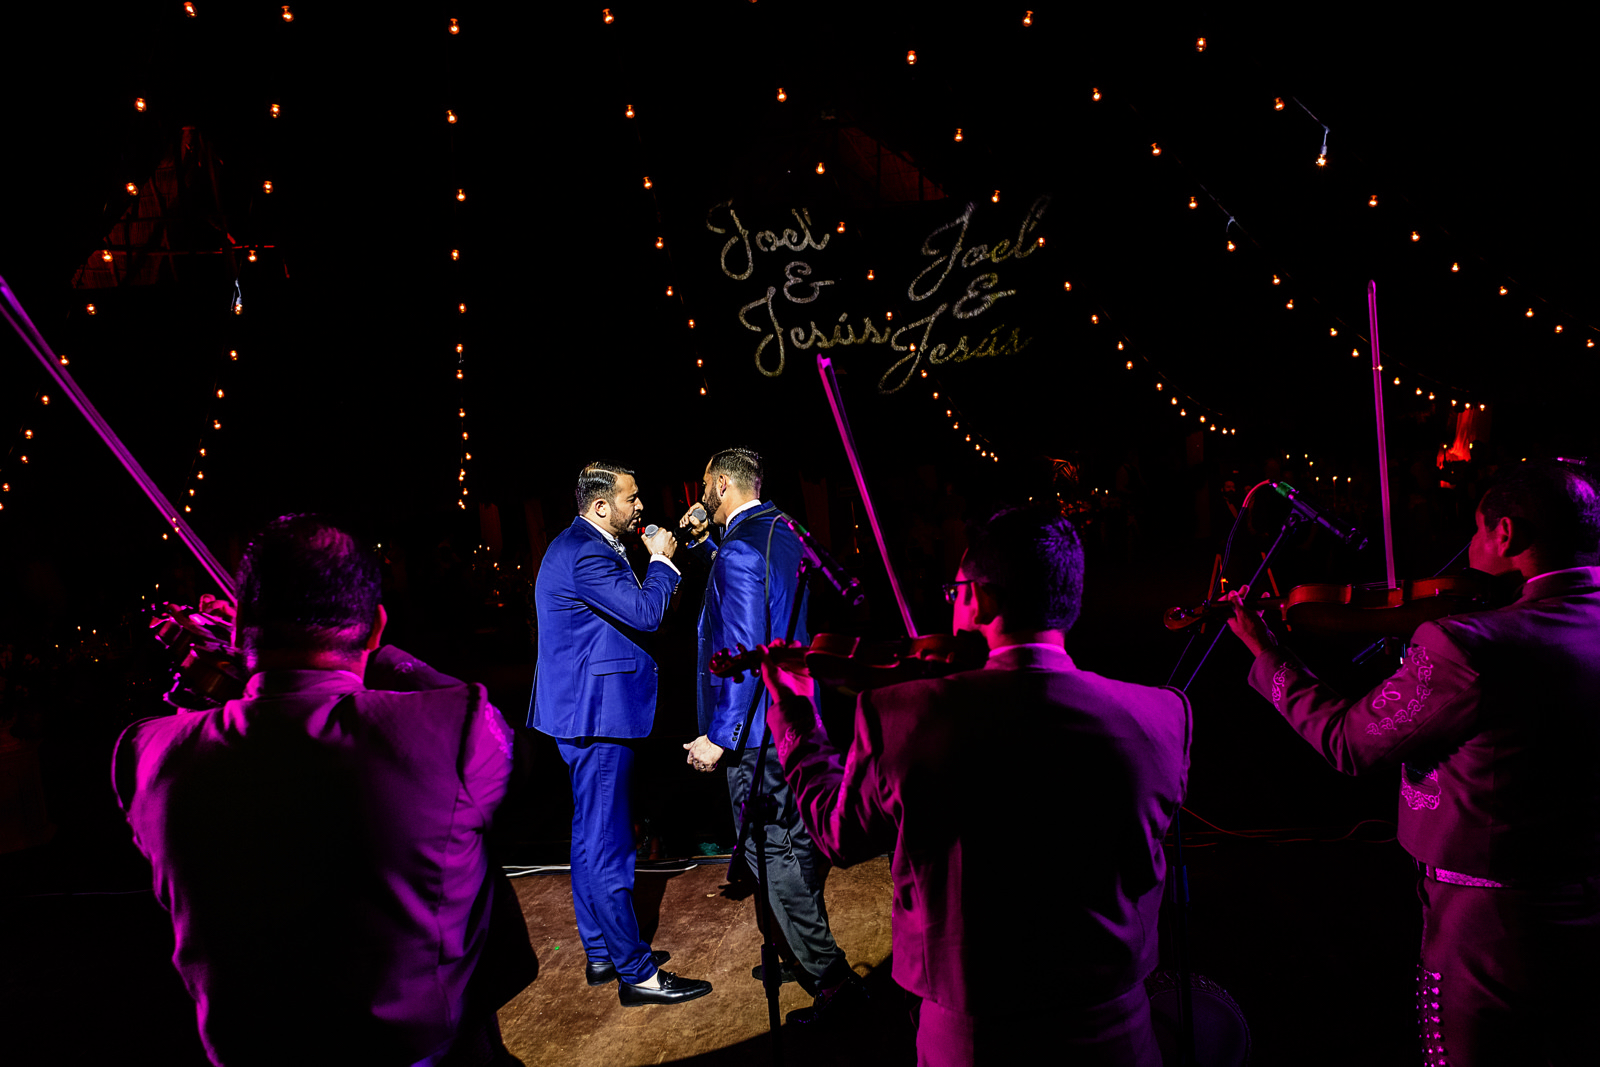 Gay couple of grooms singing on the stage with the mariachi band playing behind them.